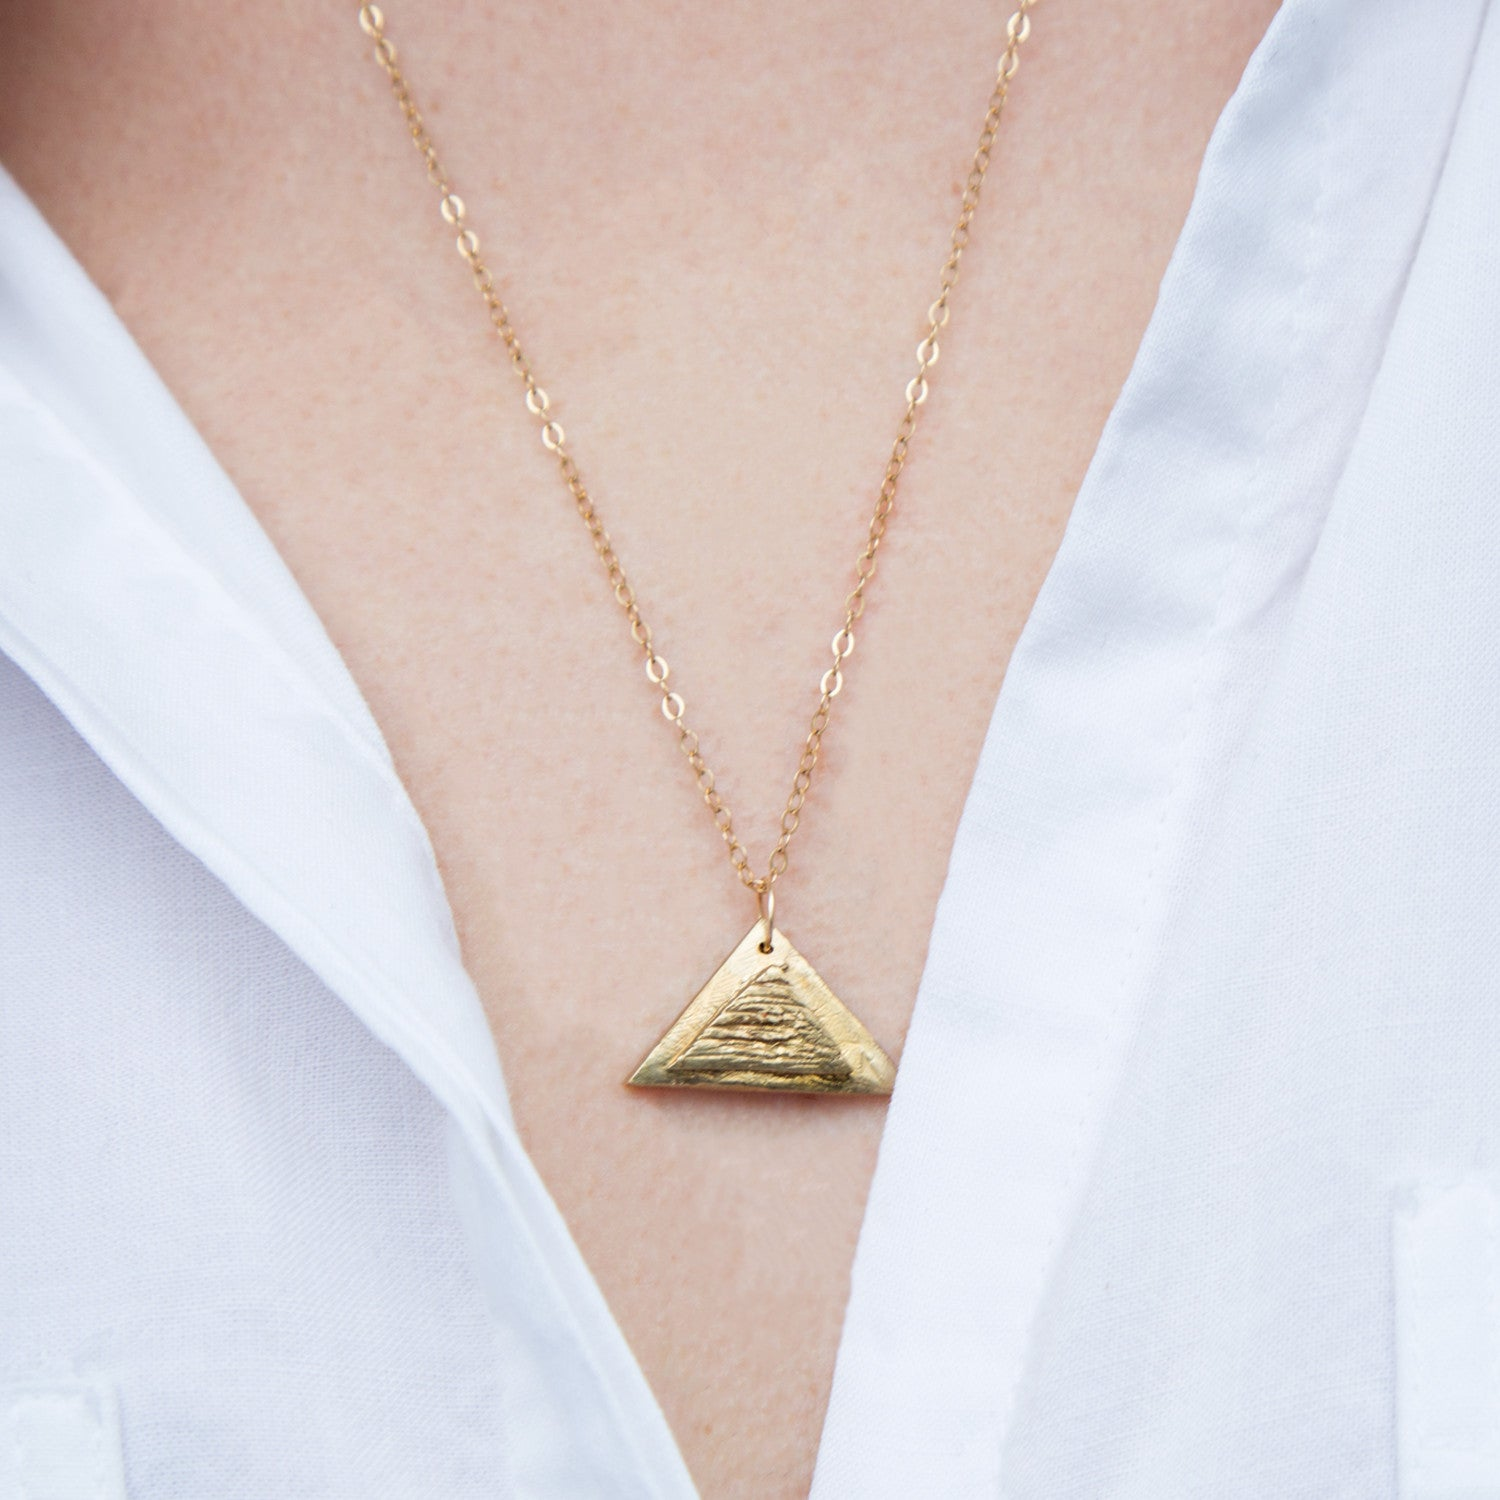 Upclose Triangle Pendant on Model